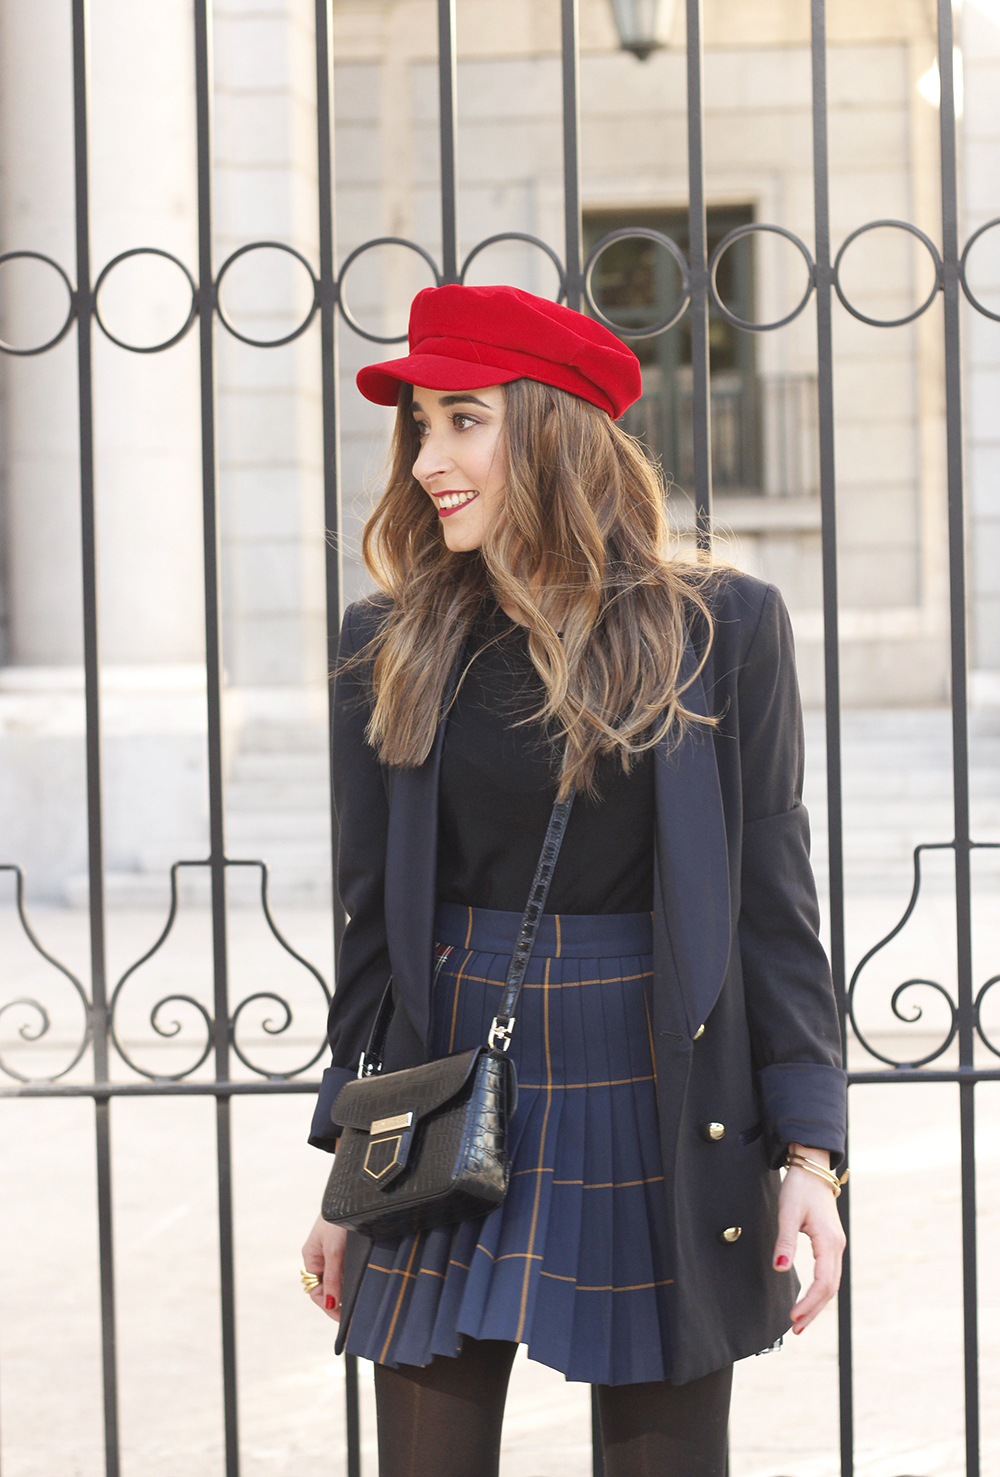 pleated skirt Scottish print Vichy print red navy cap givenchy bag winter outfit falda de tablas look invierno 201812